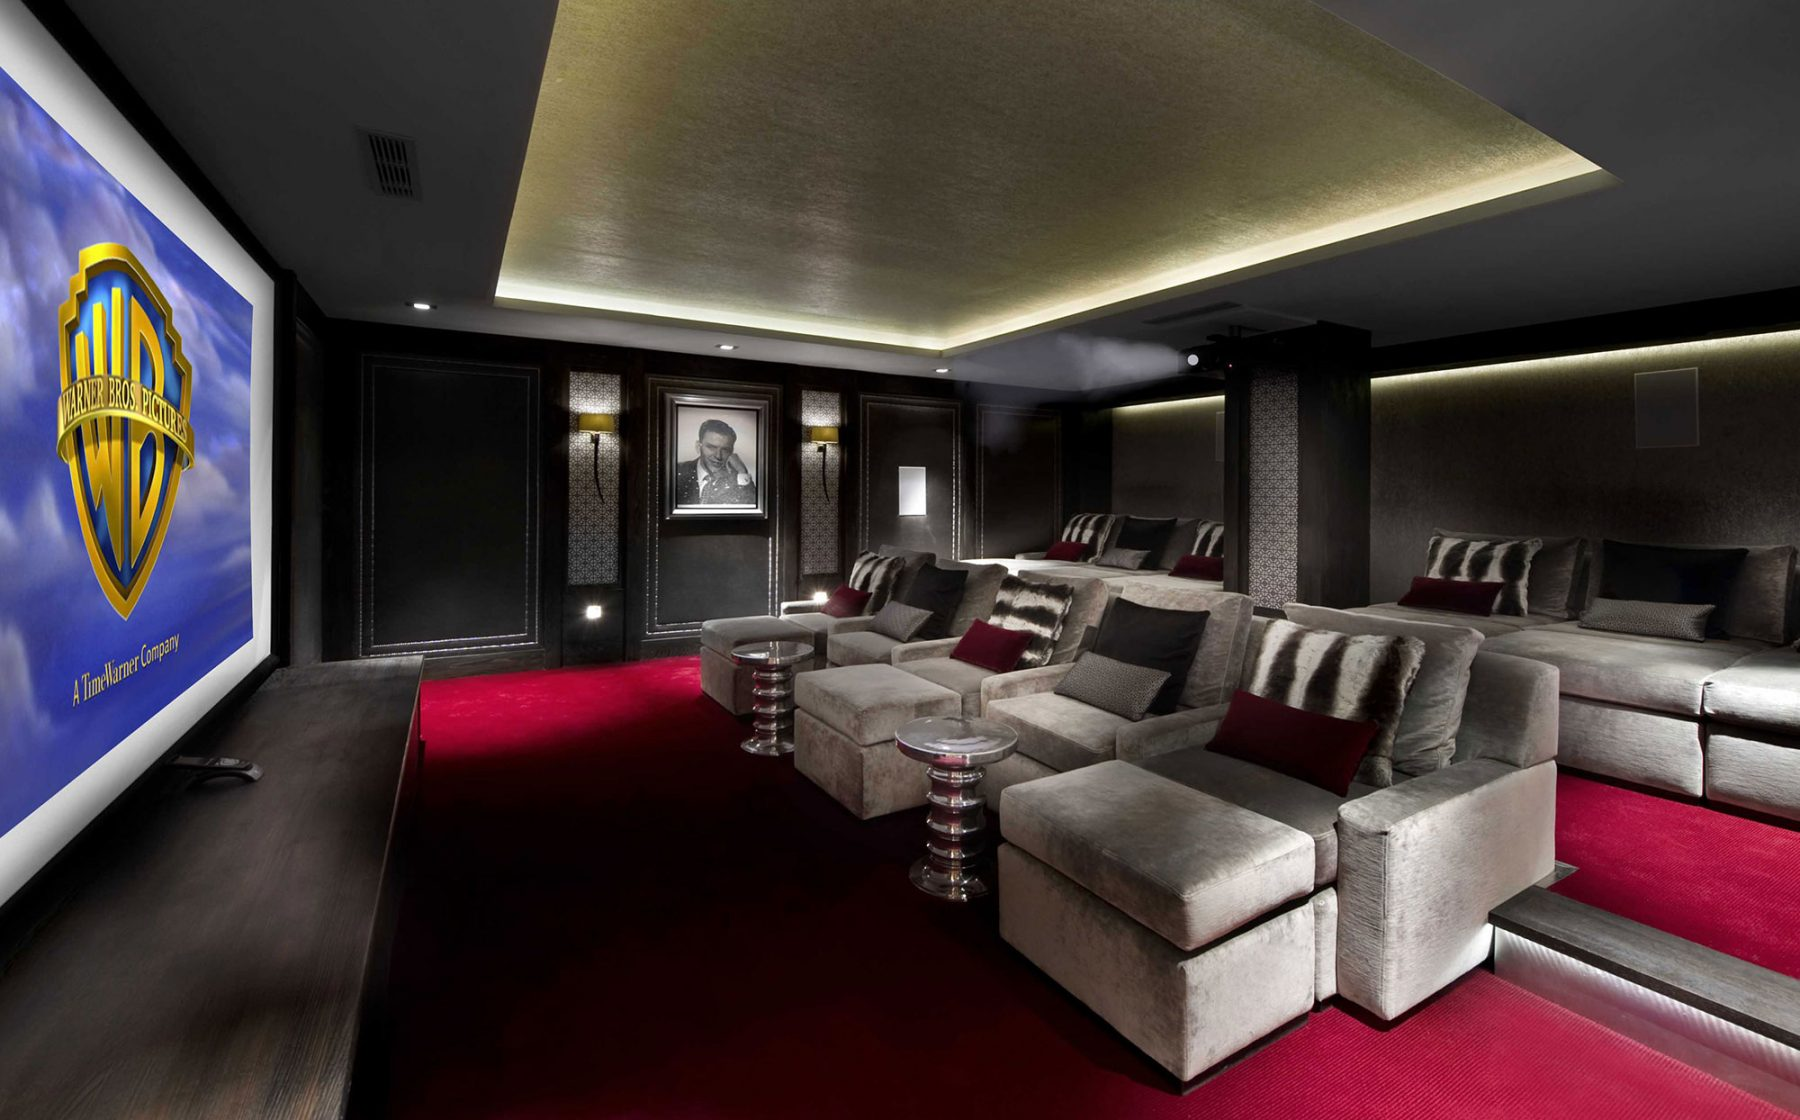 chalet le blanchot wilkinson beven our inspiration for this chalet home cinema room was provided by the glamorous and classic odeon theatre style luxurious bespoke furnishings set the tone